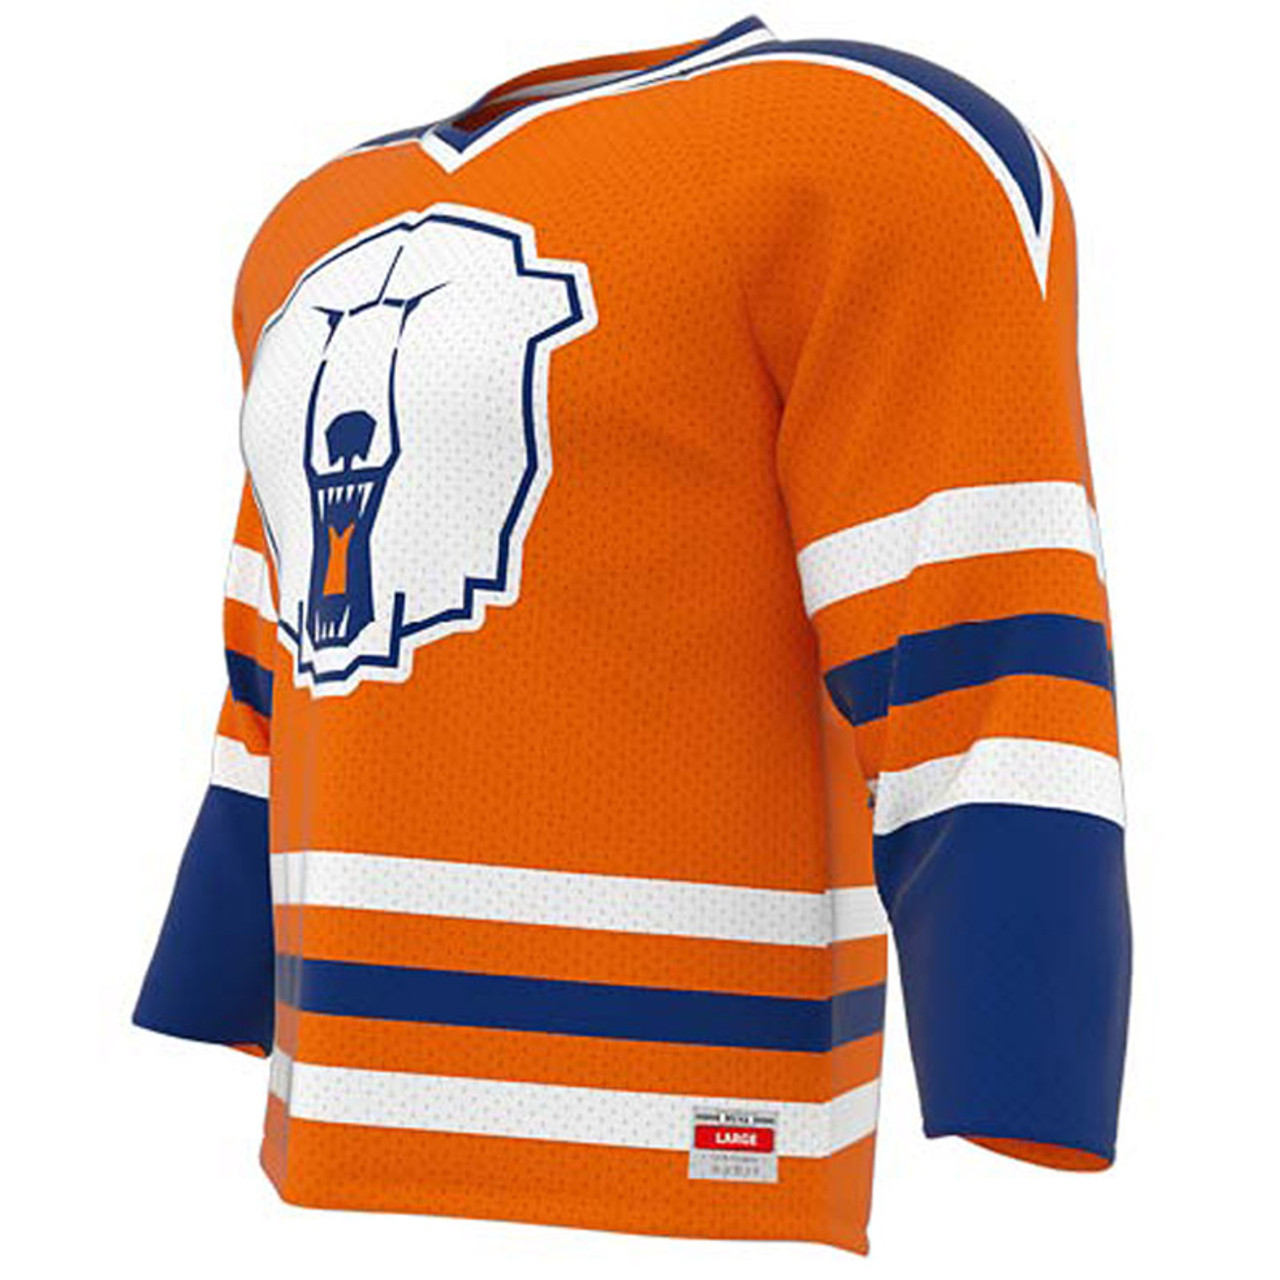 finest selection 03521 25c7f AthElite Mens Double Overtime Reversible Hockey Jersey